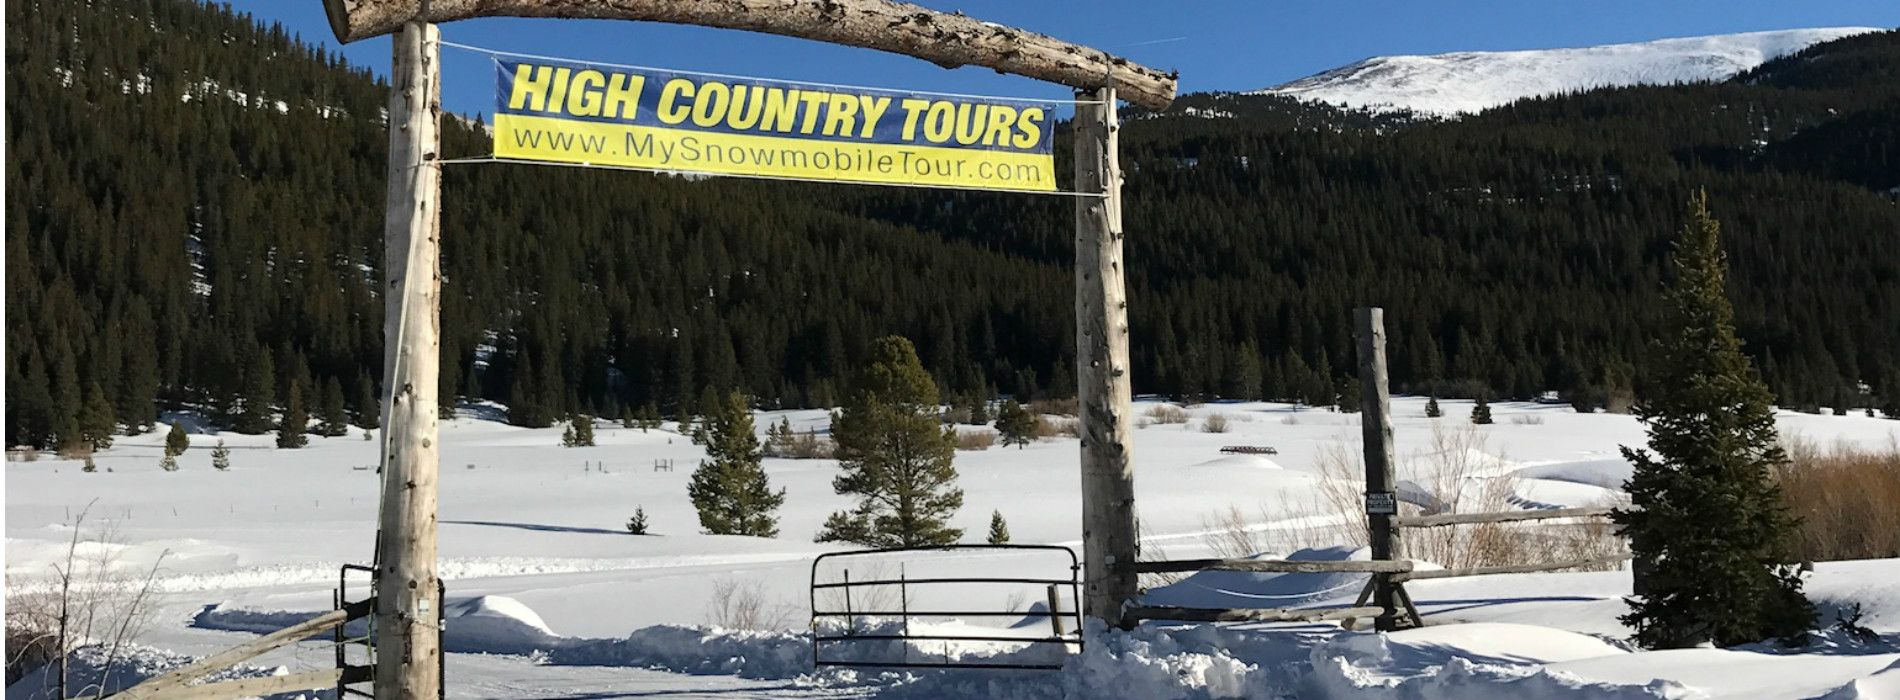 Keystone colorado 80435 snowmobile tours and rentals by